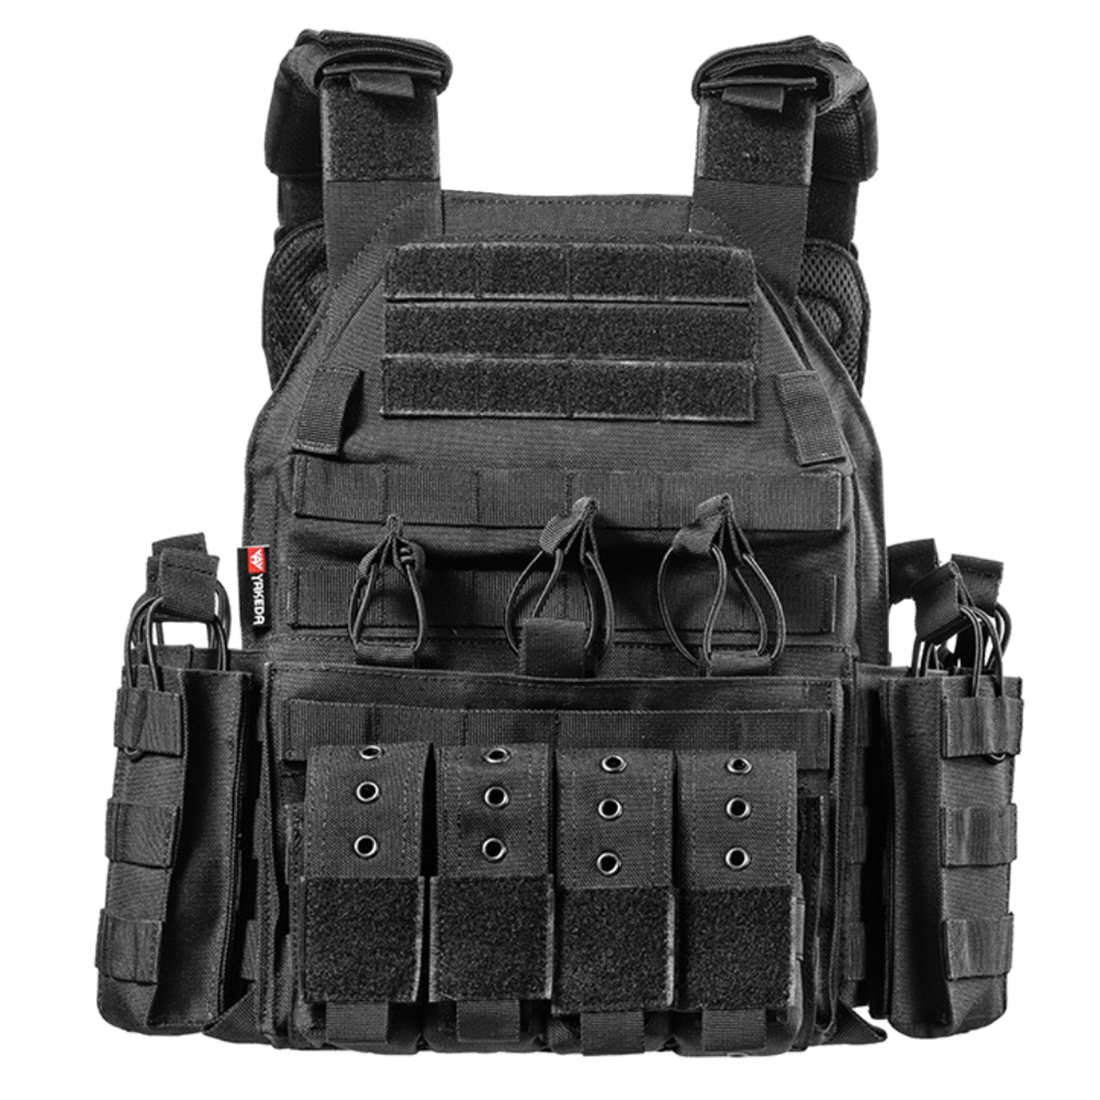 YAKEDA Plate Carrier Tactical Accessories for Men Outdoor Airsoft Body Protective Accessory outdoors tactics accessories Tan